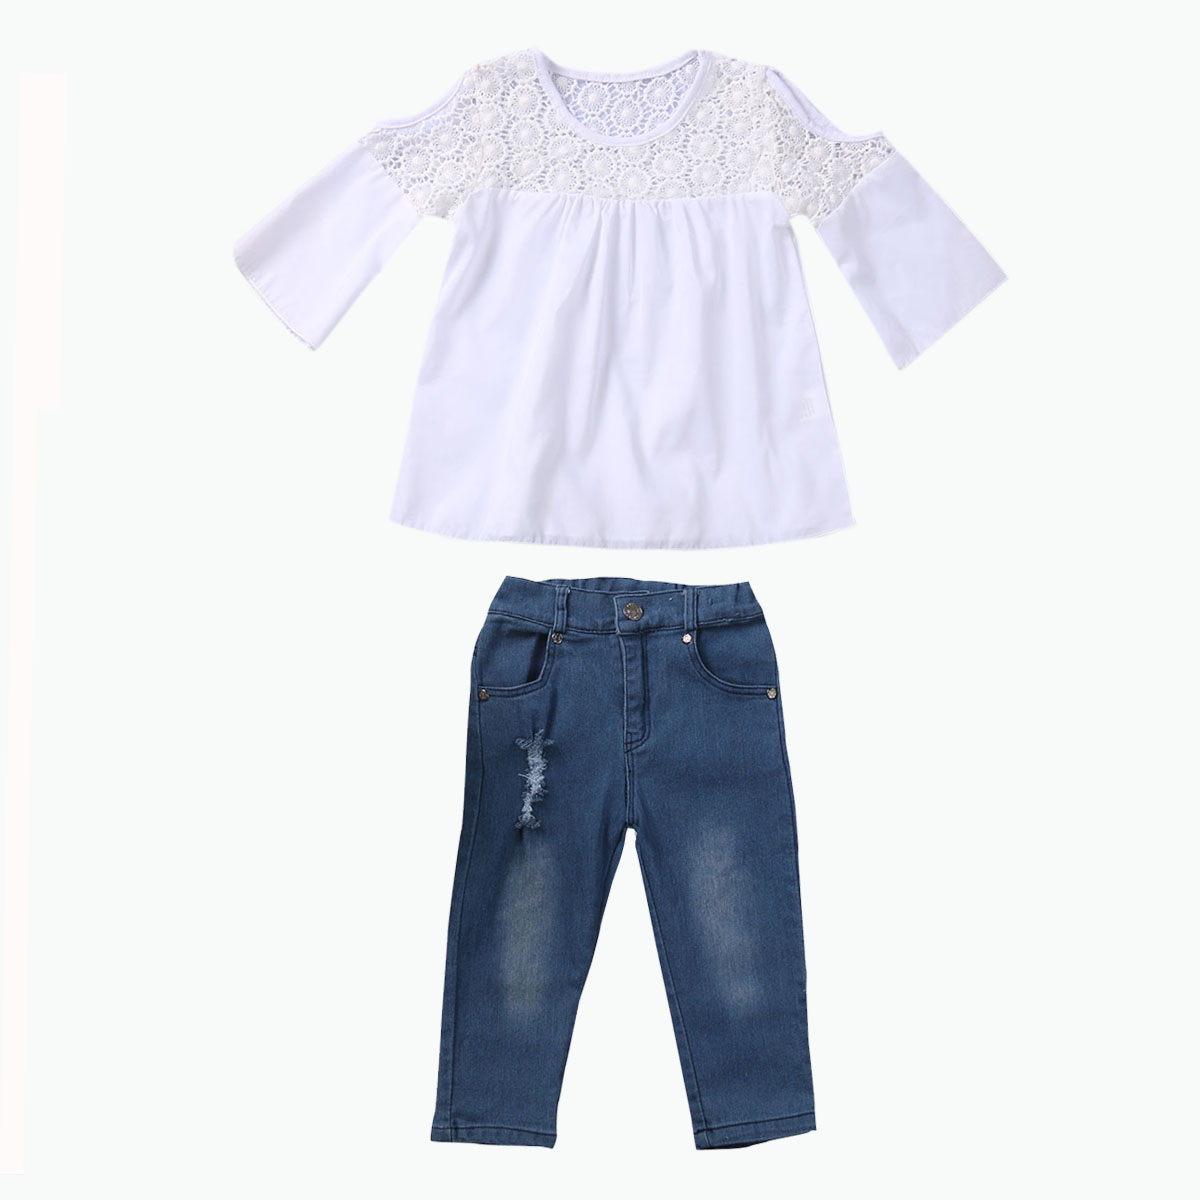 2017 Cute Kids Girl Clothing Set Off shoulder Lace White T-shirt Tops+Denim Pant Jeans 2PCS Children Clothes 2-7Y 2017 new fashion kids clothes off shoulder camo crop tops hole jean denim pant 2pcs outfit summer suit children clothing set